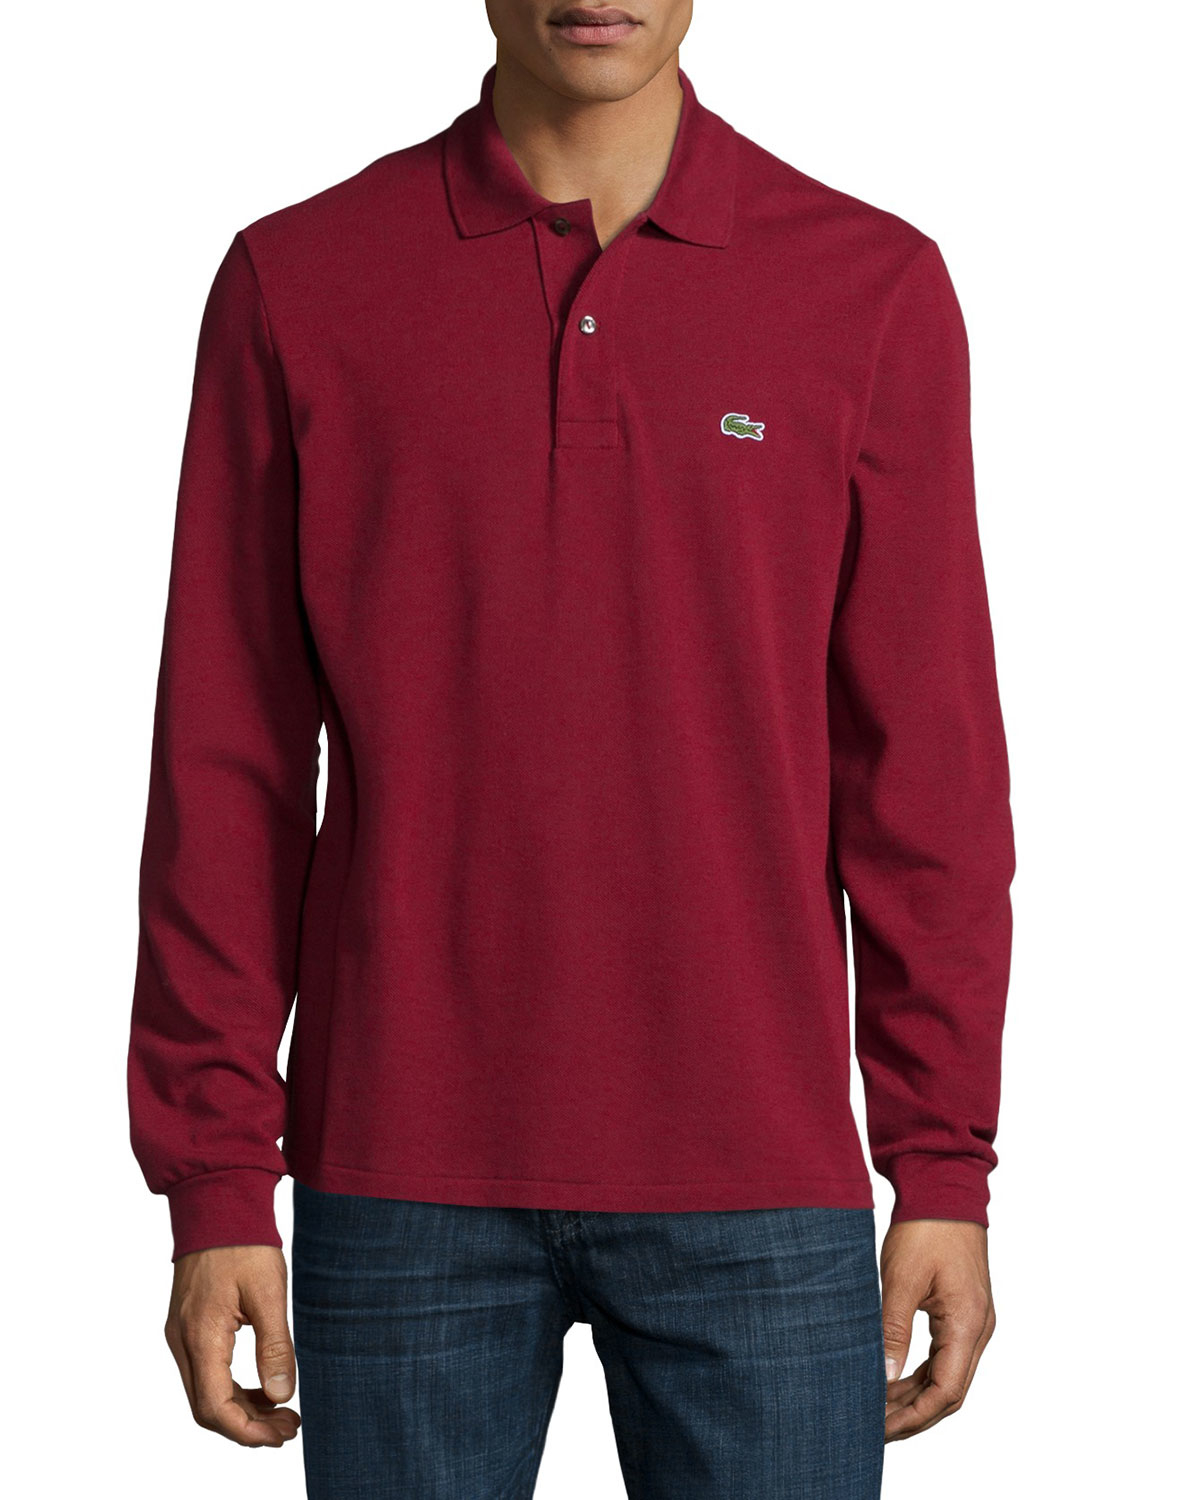 55403ad5029a netherlands lacoste classic long sleeve polo 8bcc1 694d2